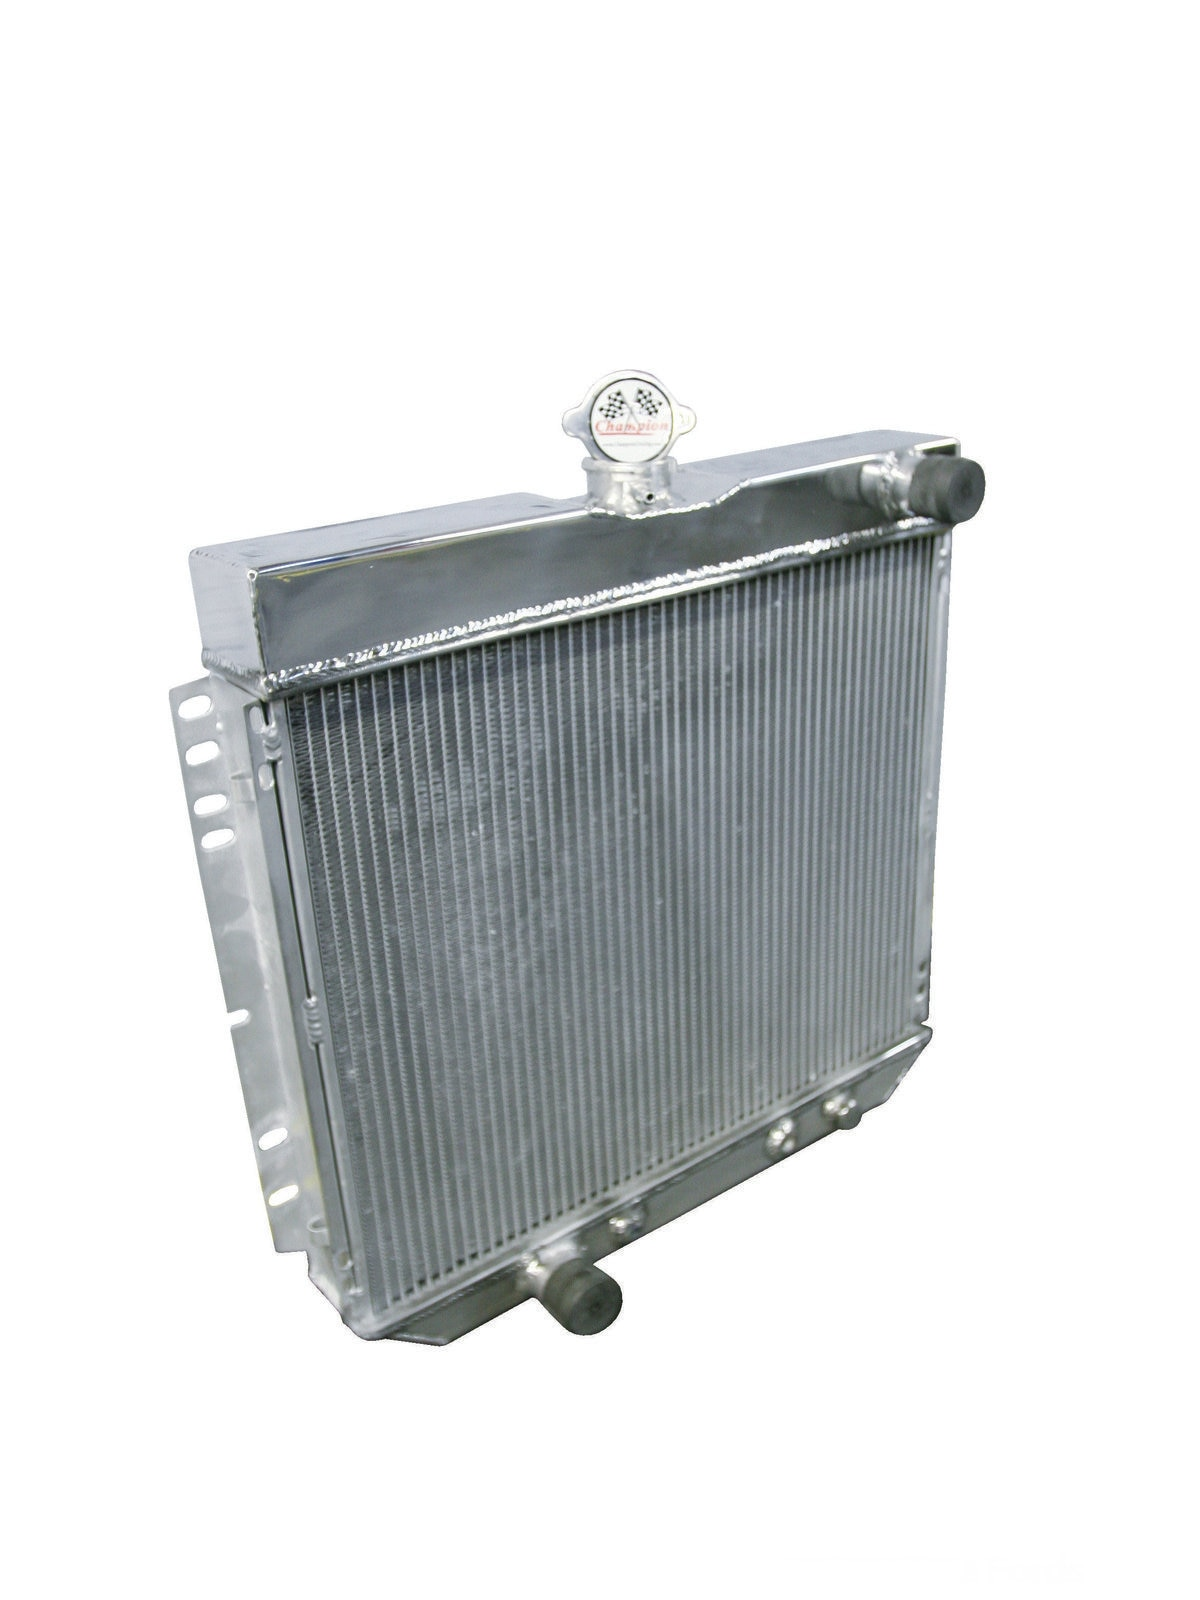 Project High School Hauler Fundamental Fixes Champion Radiator